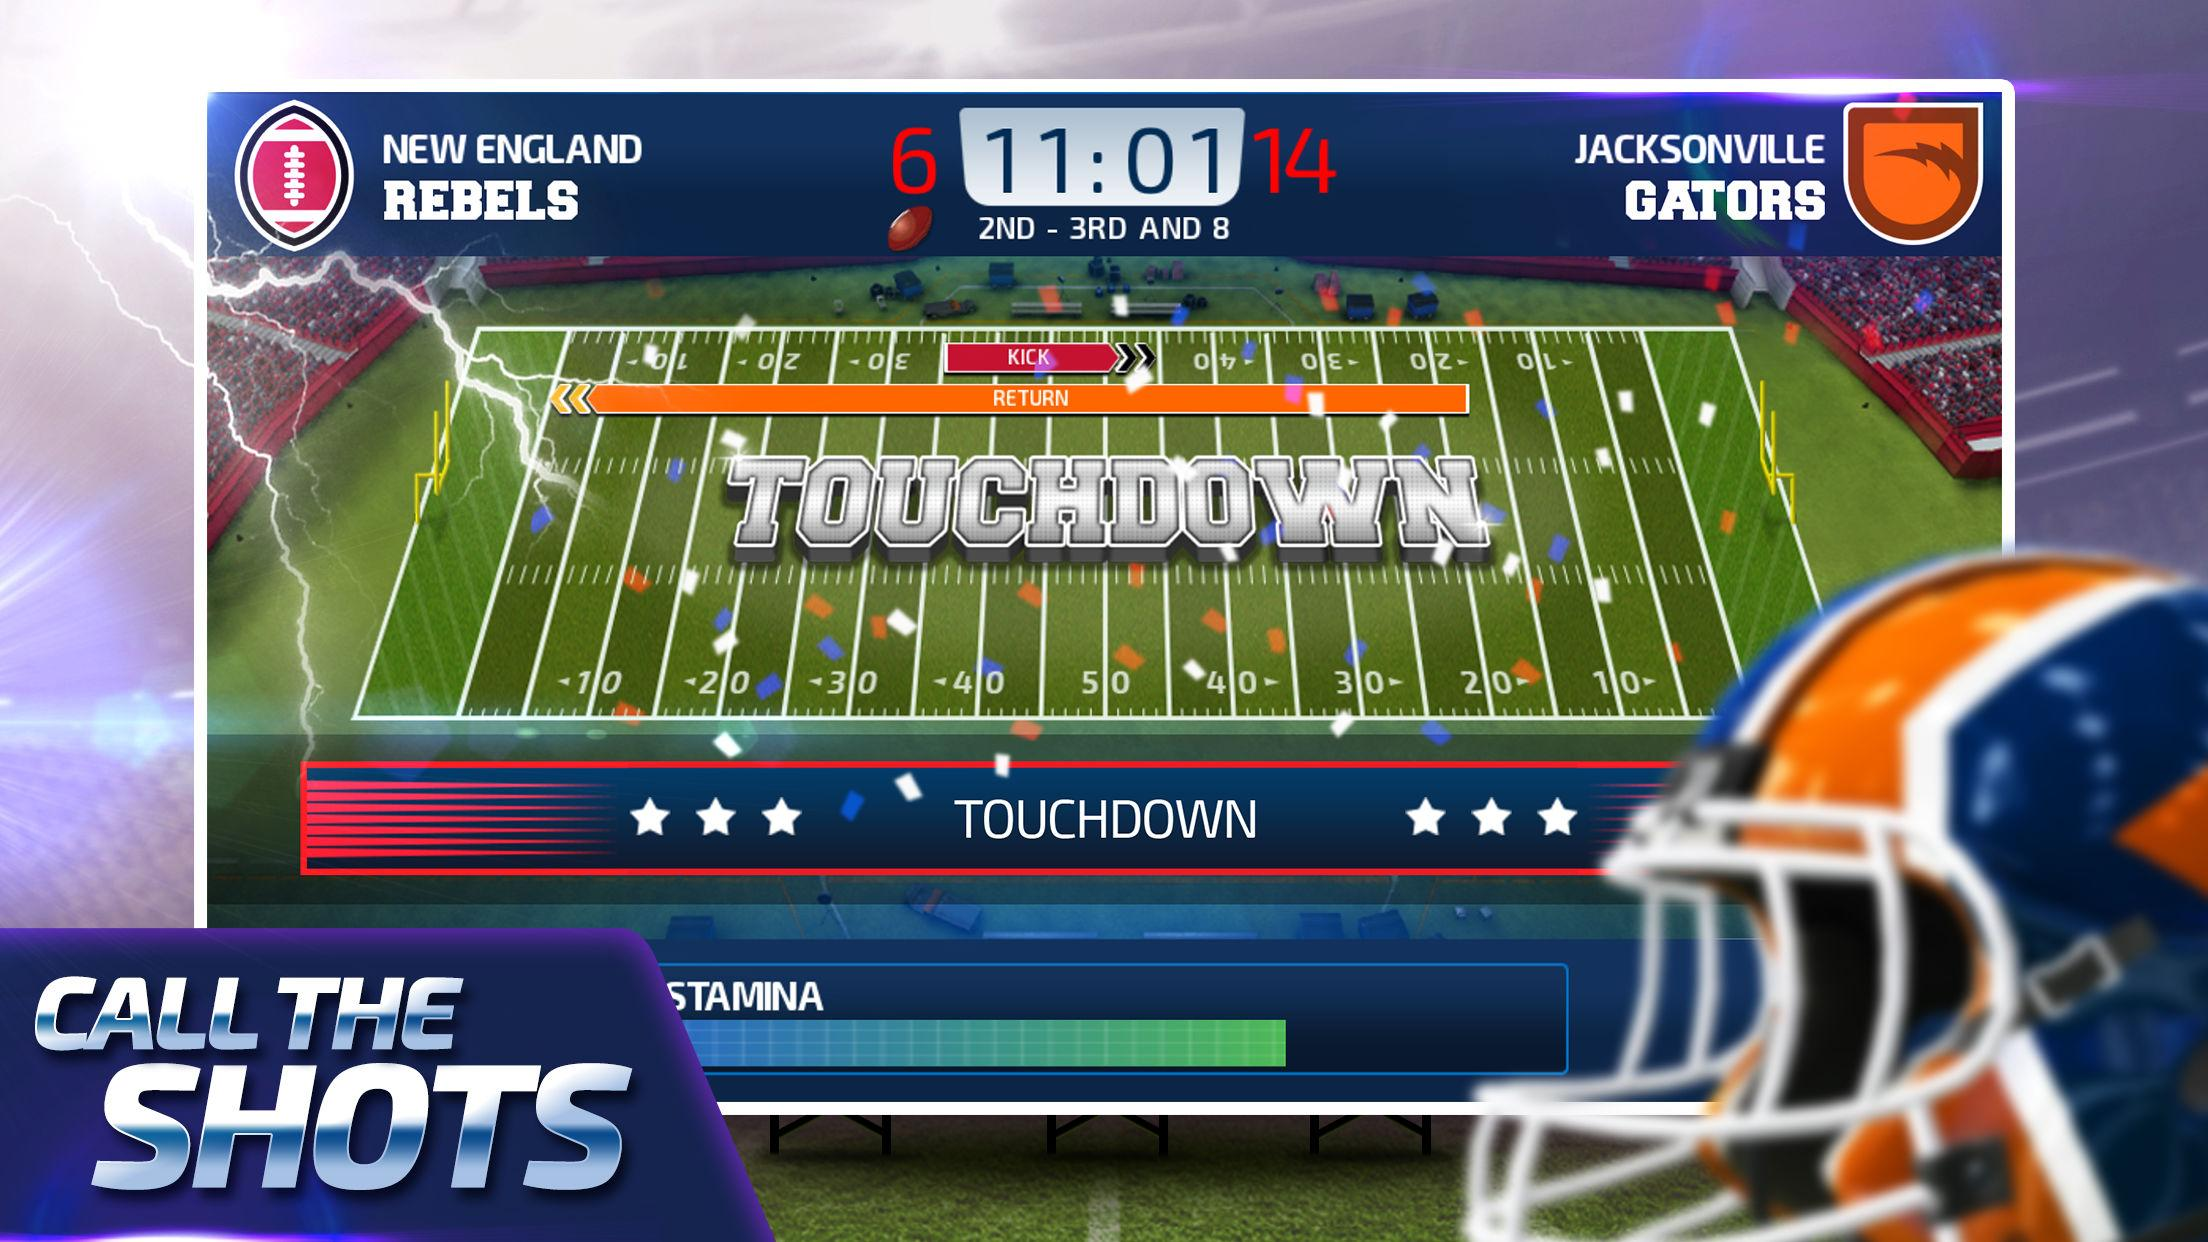 All Star Quarterback 20 - American Football Sim for Android